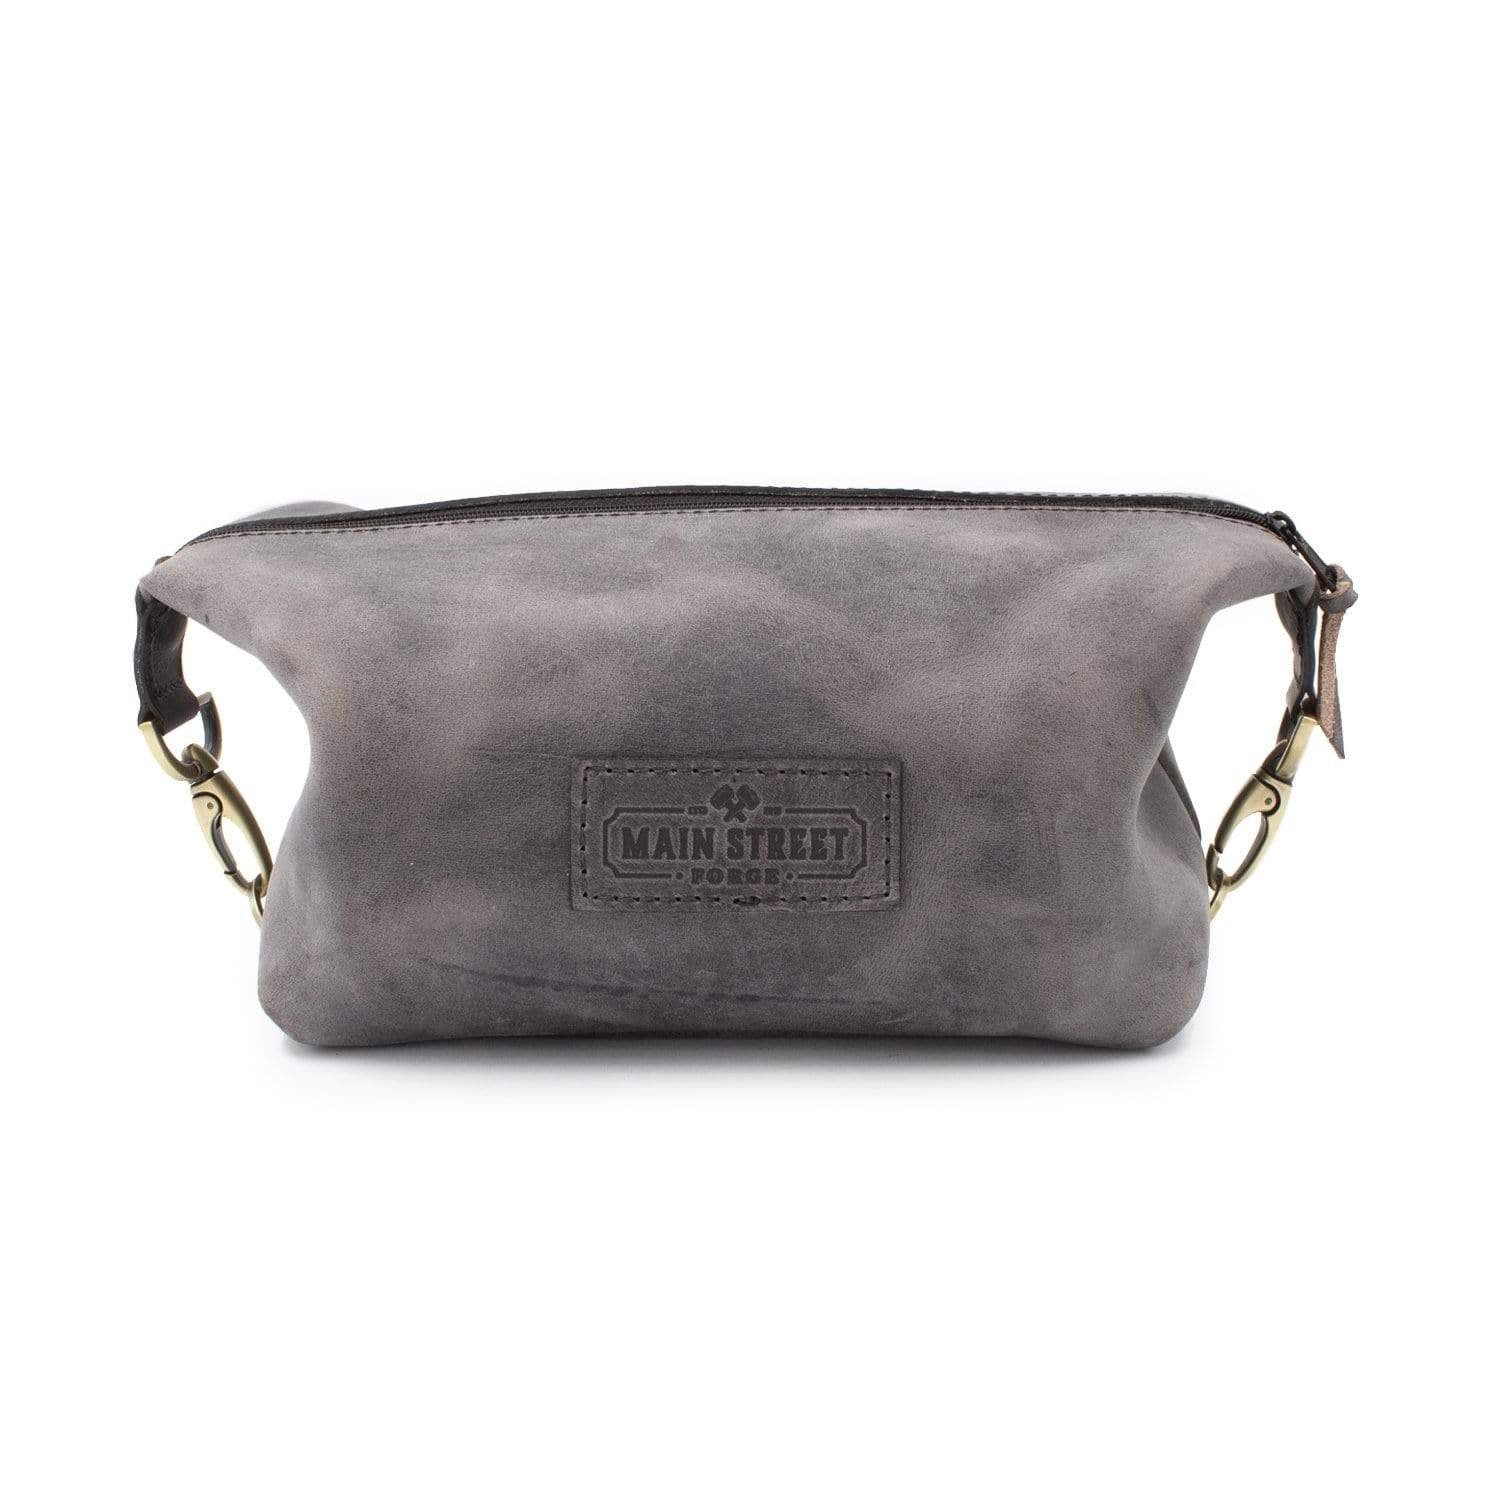 Main Street Forge Dopp Kit - Premium Full Grain Leather Toiletry Bag for Men's Grooming Essentials - Made in USA